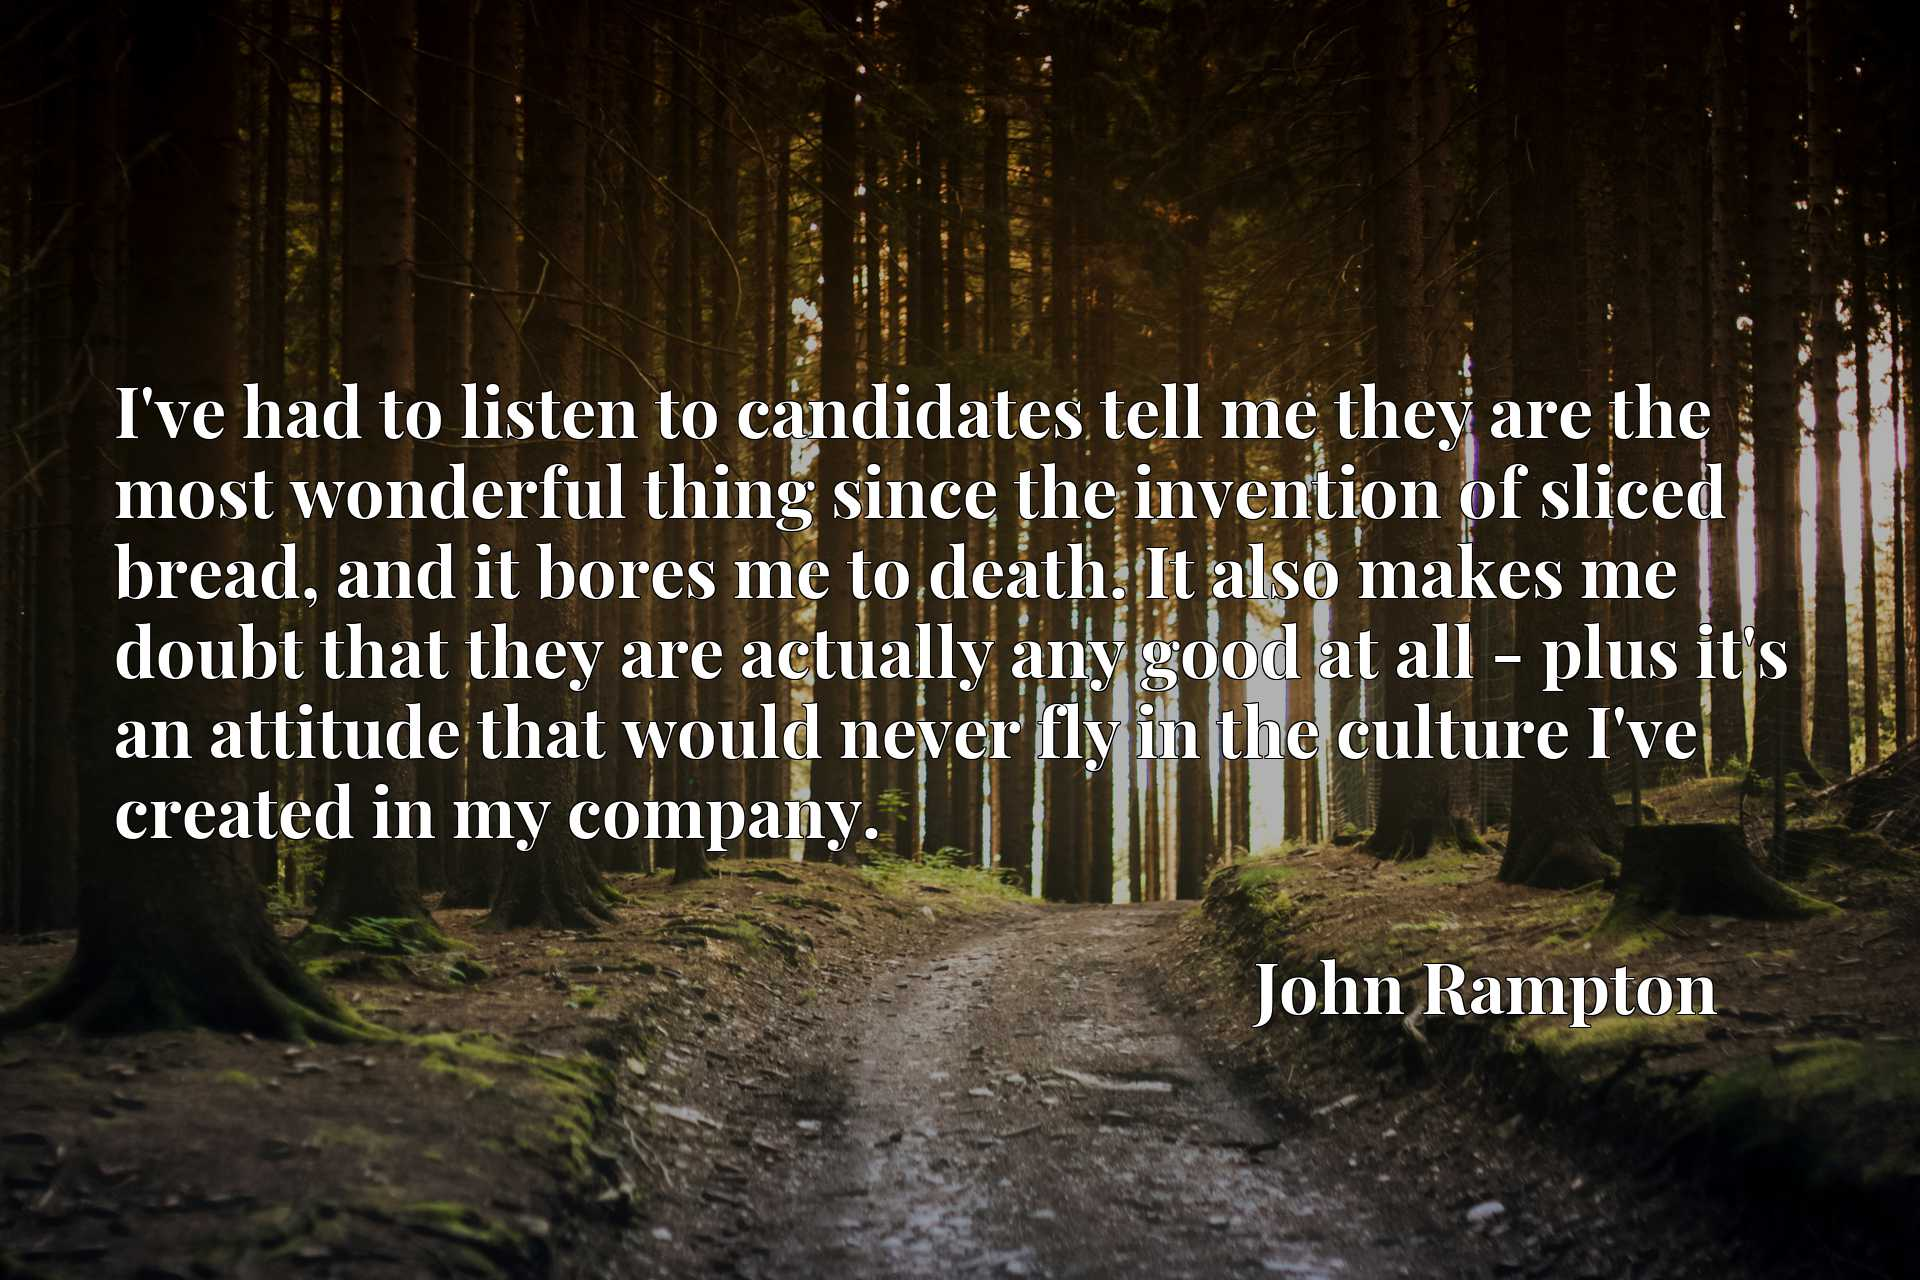 I've had to listen to candidates tell me they are the most wonderful thing since the invention of sliced bread, and it bores me to death. It also makes me doubt that they are actually any good at all - plus it's an attitude that would never fly in the culture I've created in my company.